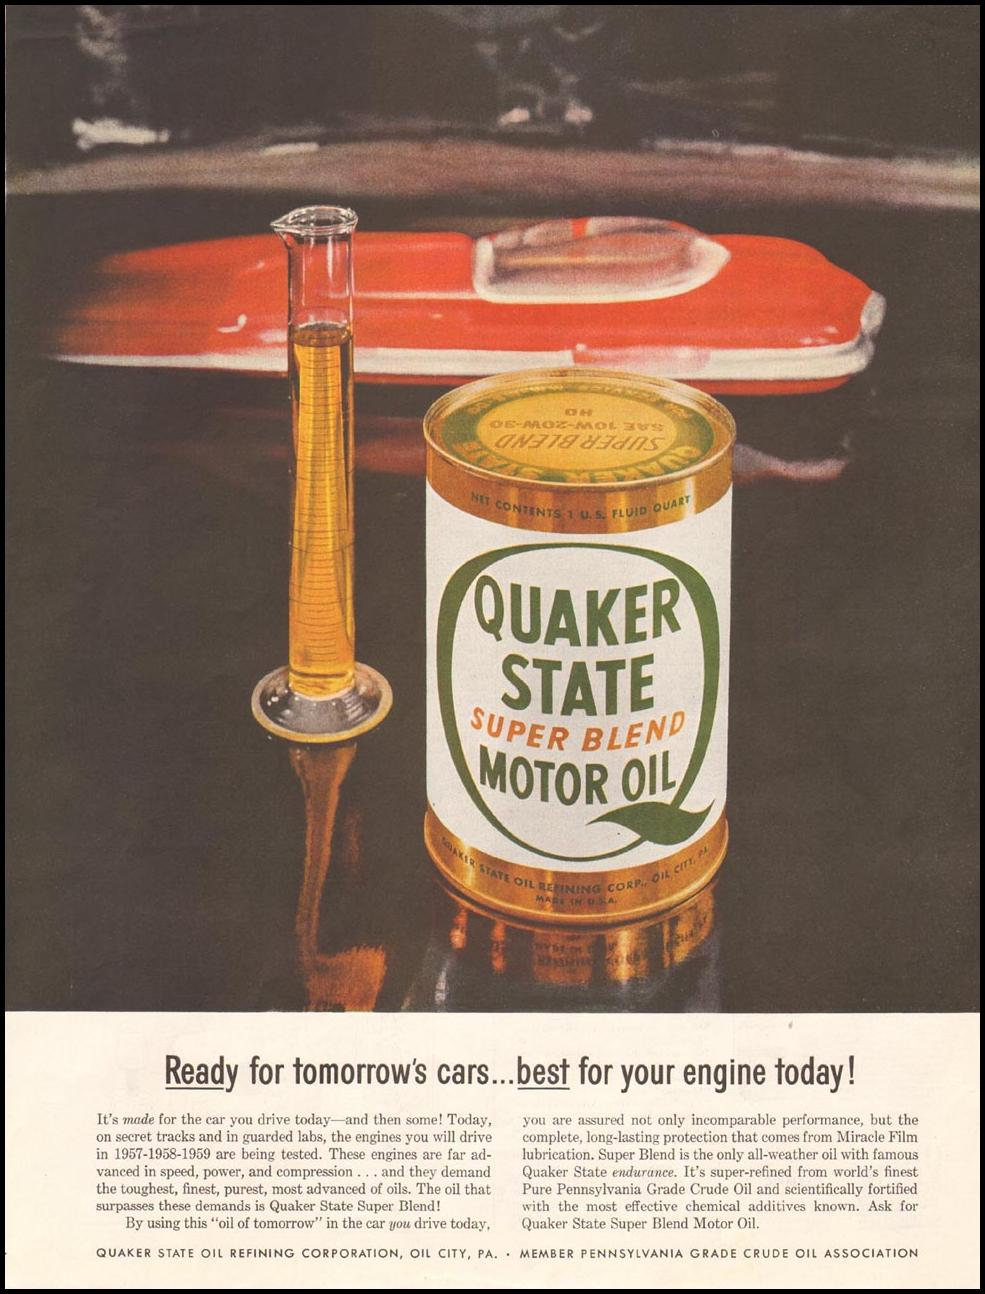 QUAKER STATE MOTOR OIL SATURDAY EVENING POST 10/29/1955 p. 93